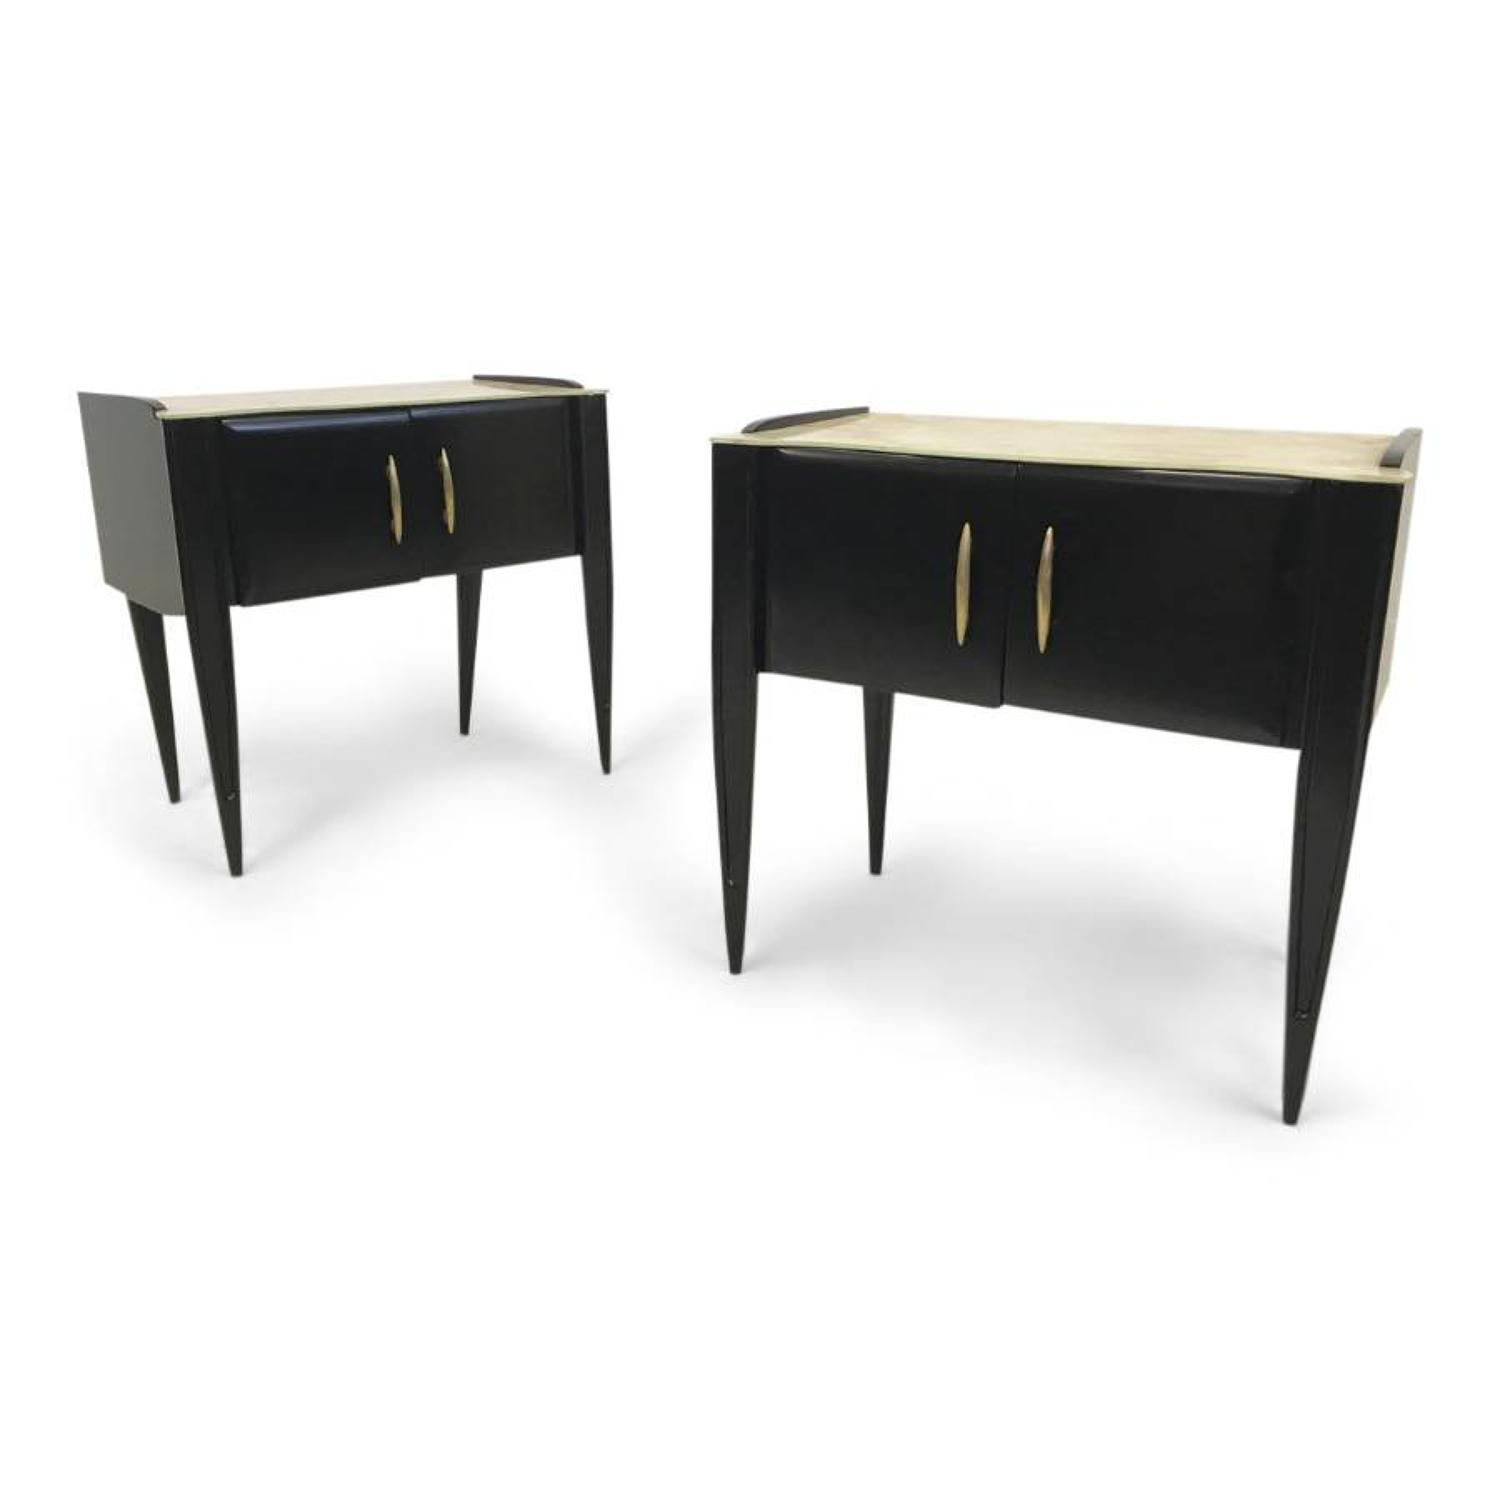 A pair of 1960s Italian ebonised bedside tables